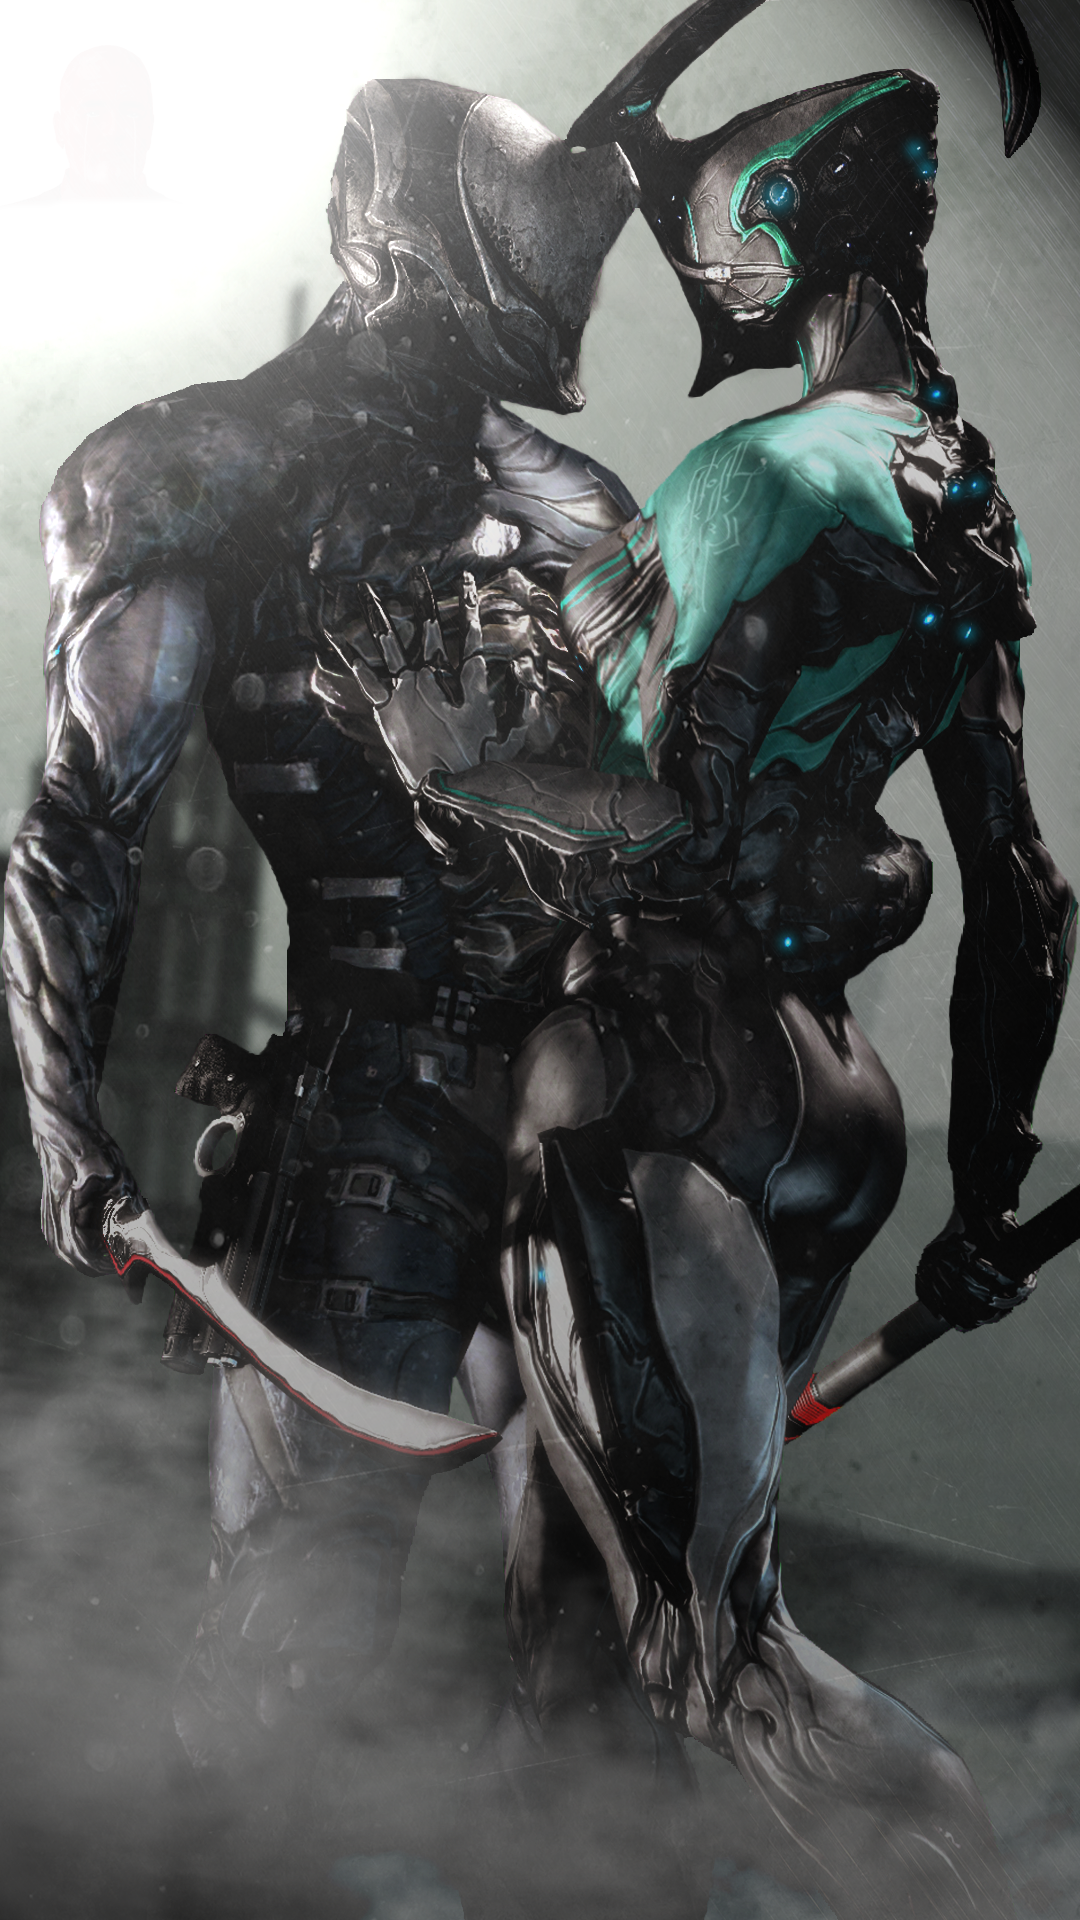 Love In The Battle By Witchygmod Good Looking Char And Shits Warframe Art Cyberpunk Warframe Excalibur